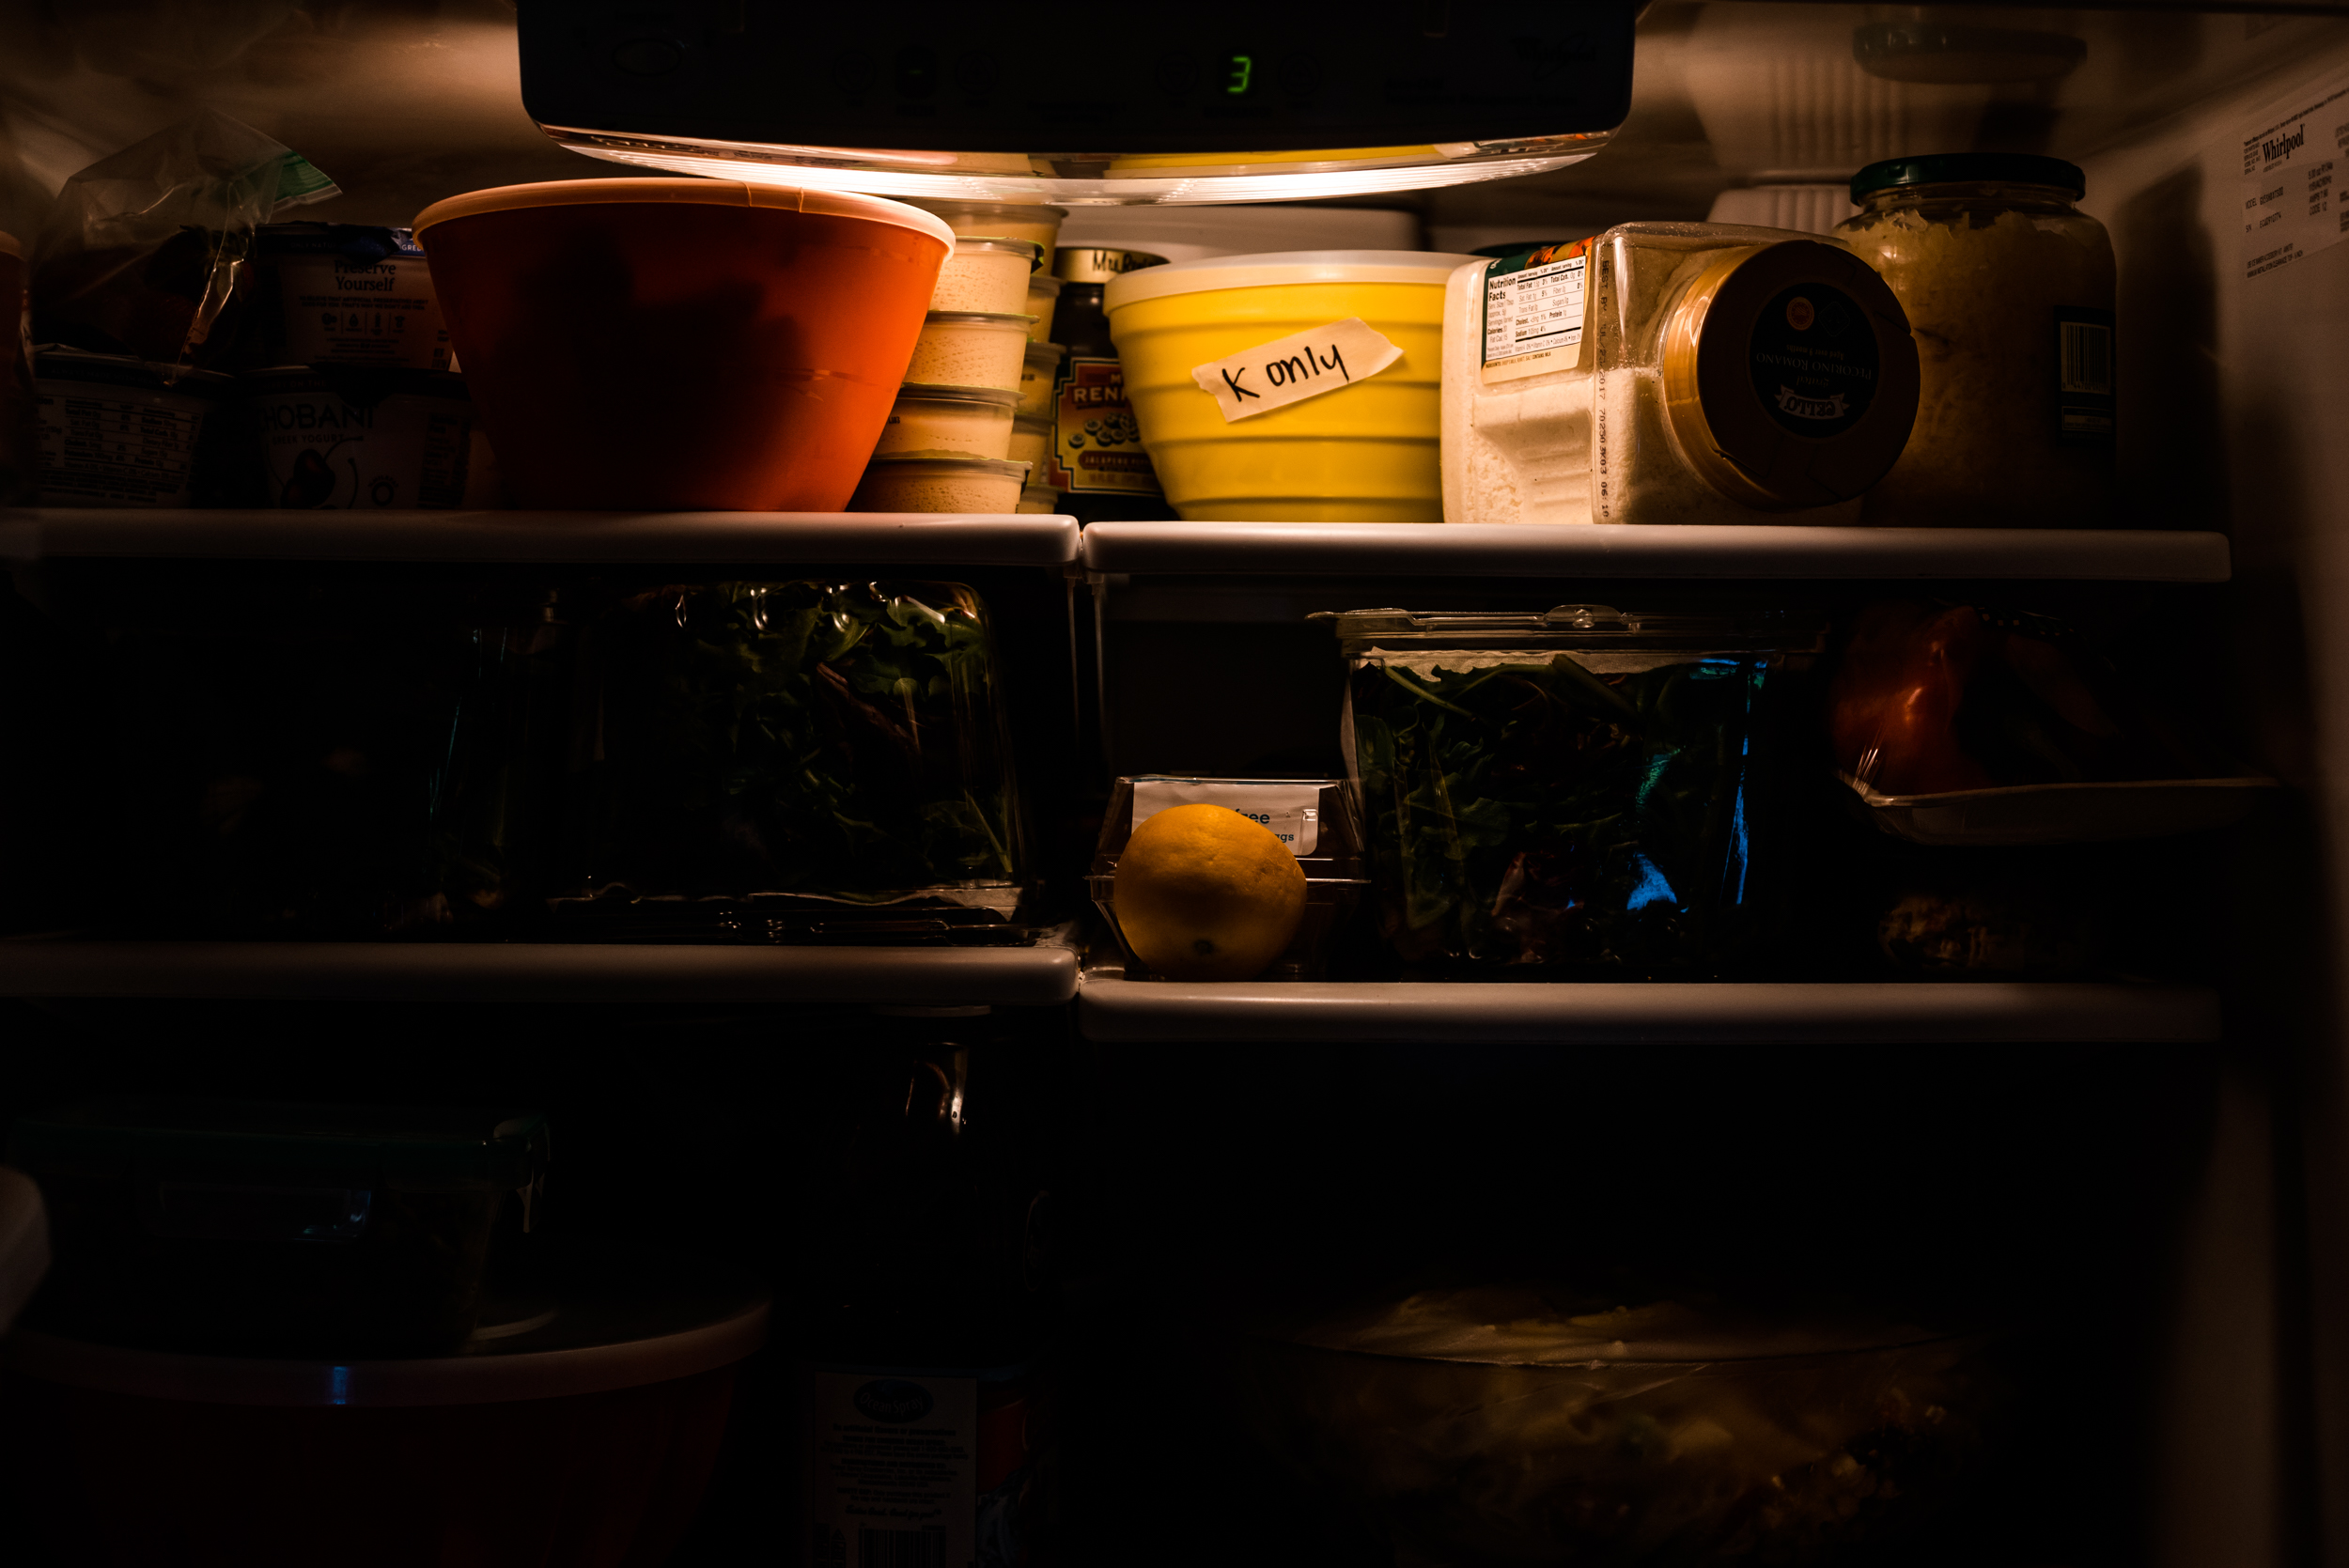 Dark inside of refrigerator shows outlines of containers and light shows yellow container with labeled tape.